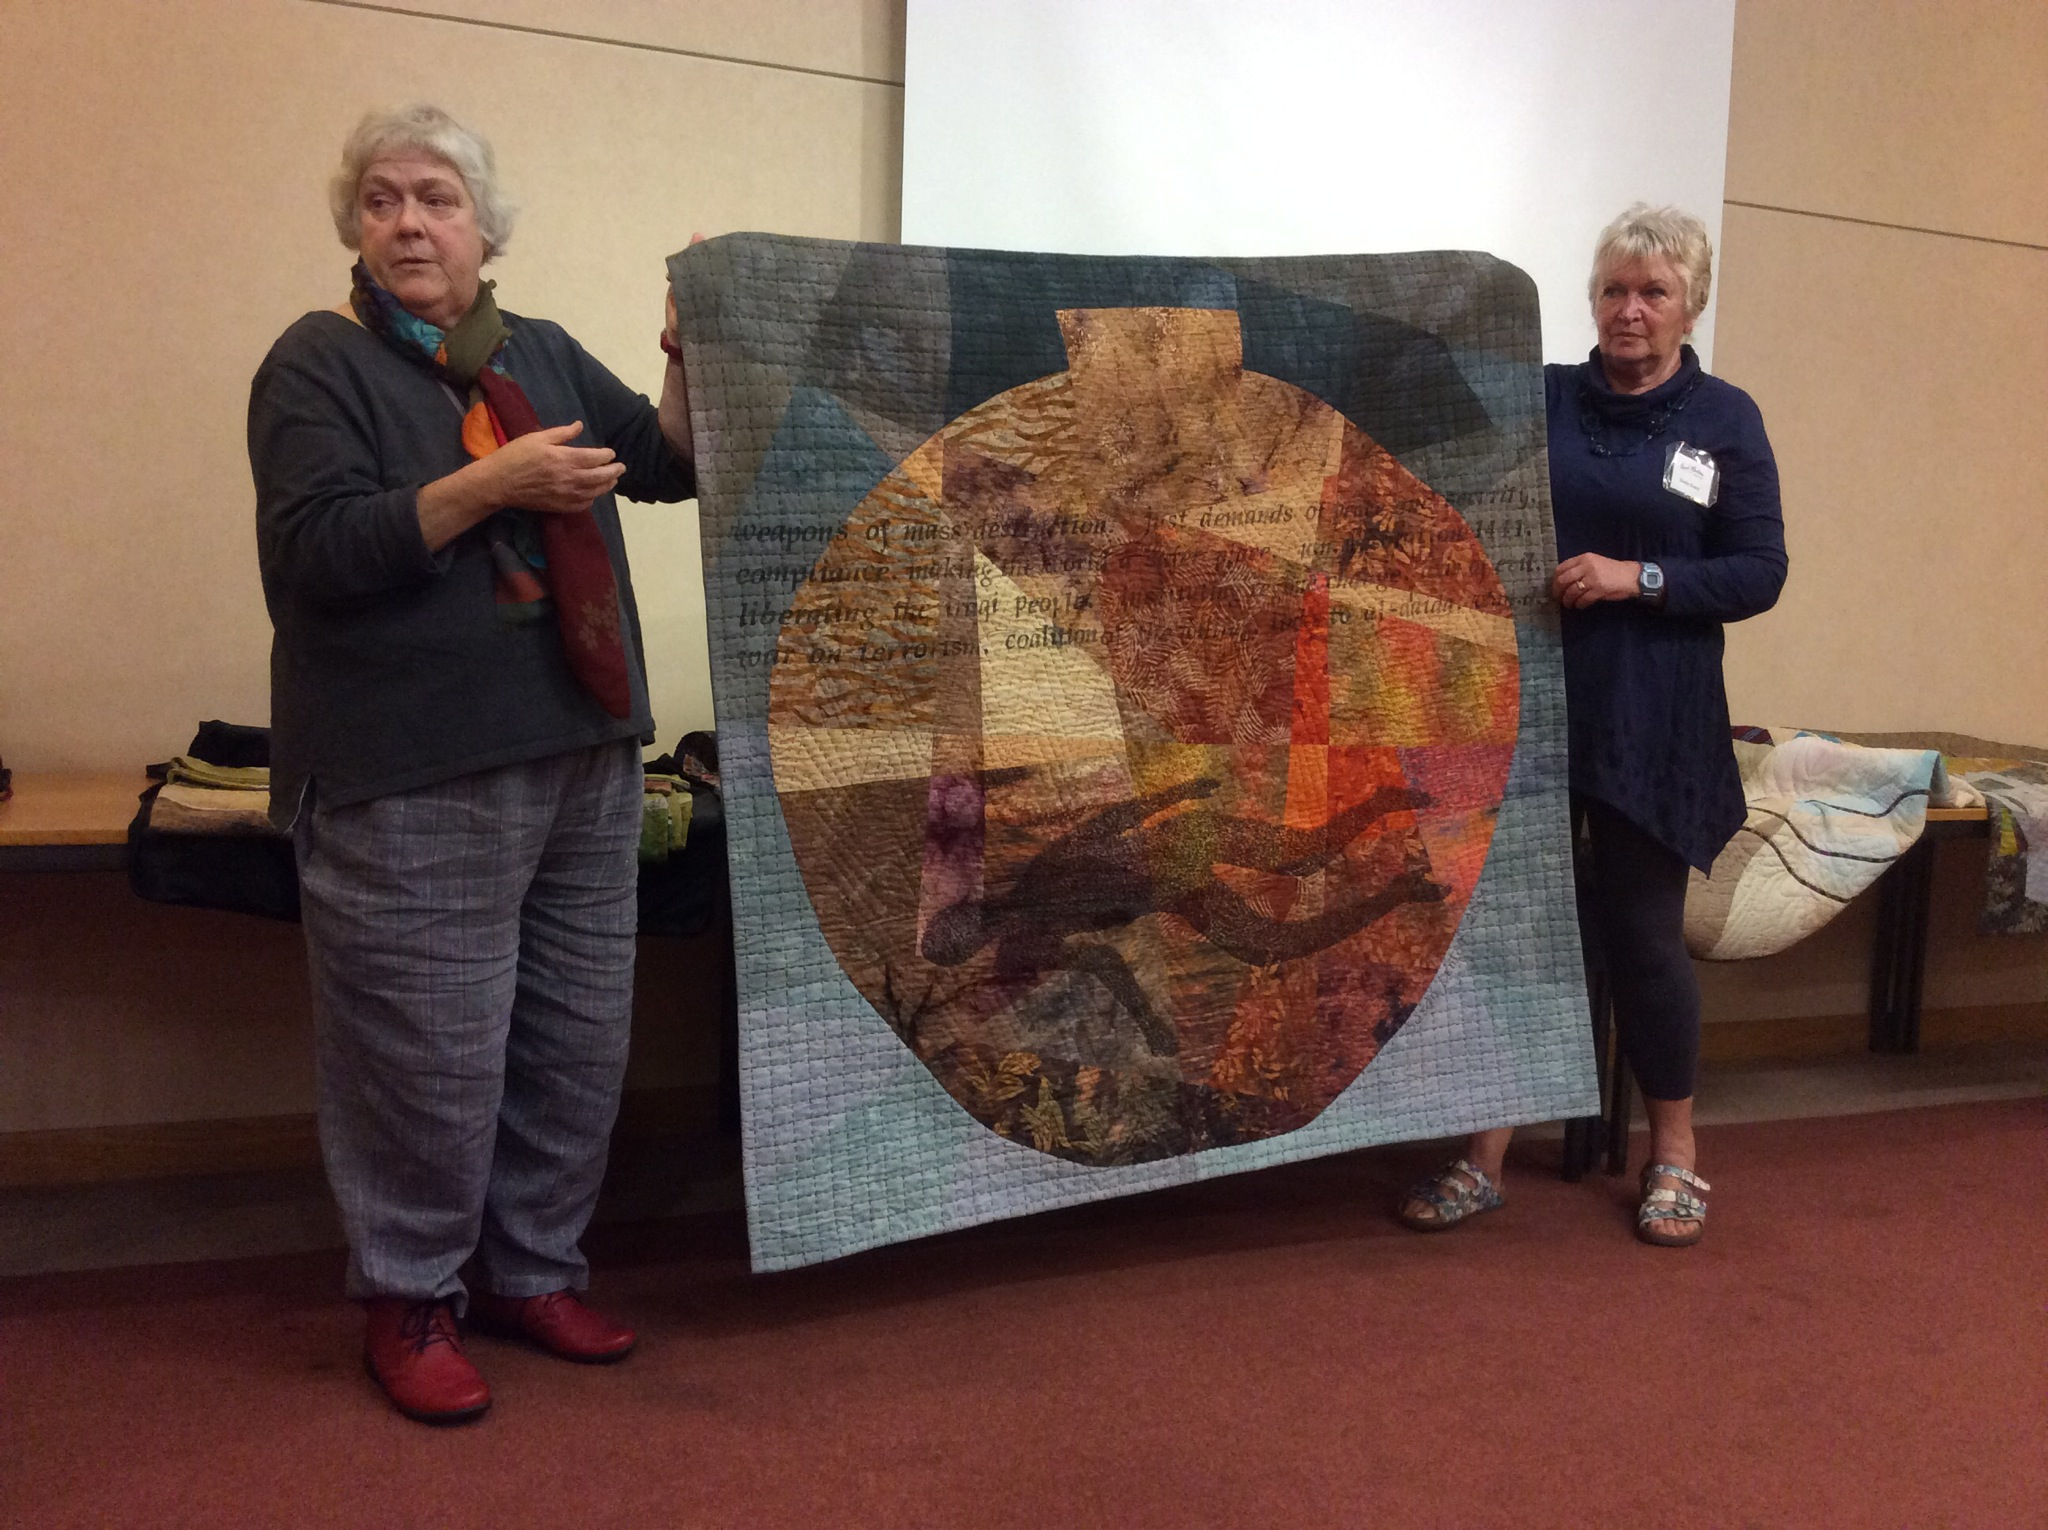 Susan Denton and Sheila Evans hold up one of the quilts on show at the quilting workshop